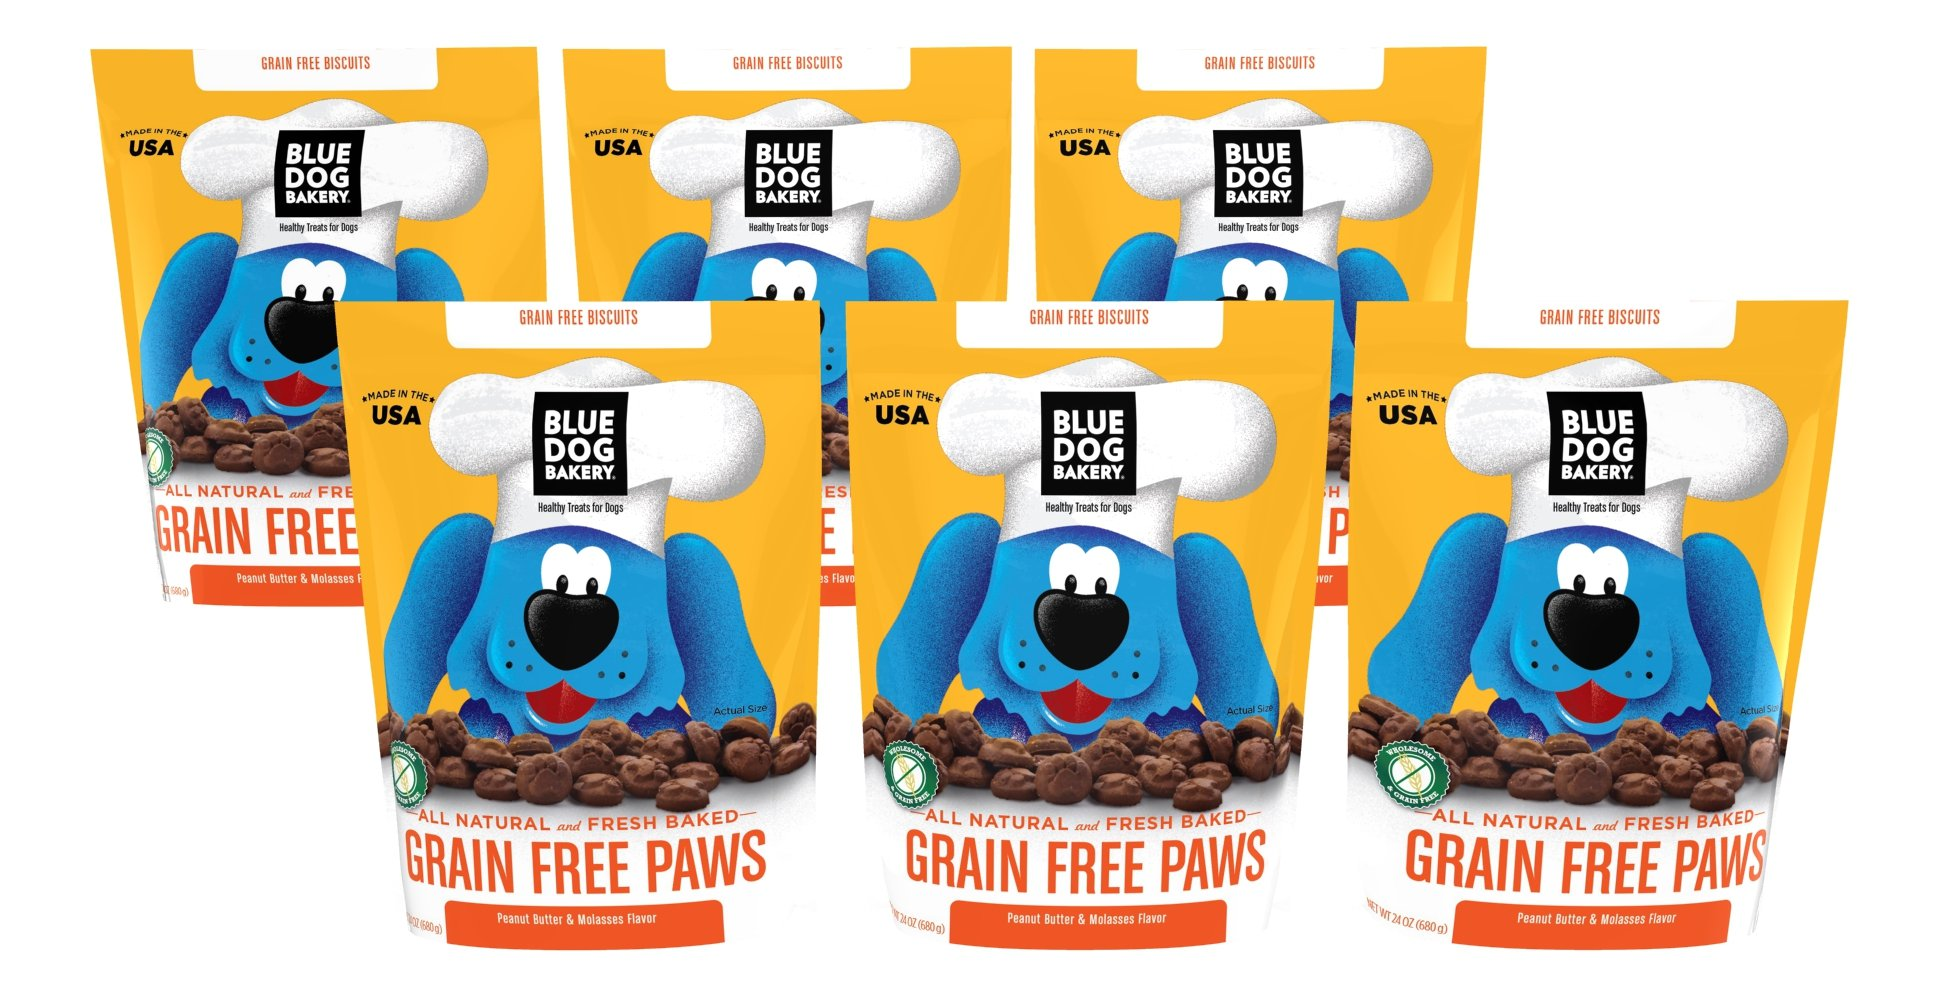 Blue Dog Bakery Grain-Free Dog Biscuits | All-Natural | Peanut Butter & Molasses | 24oz (Pack of 6)